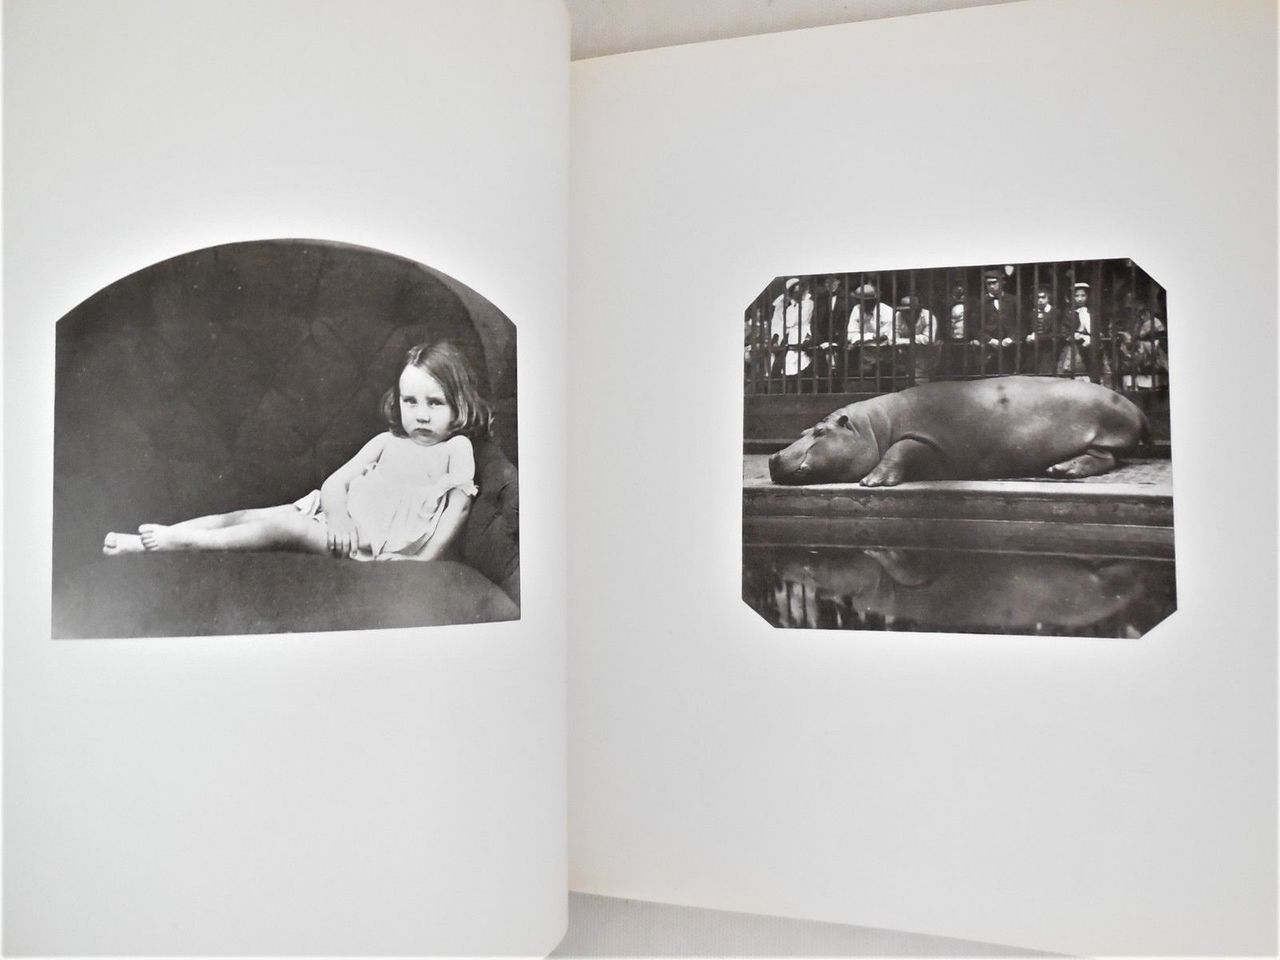 A BOOK OF PHOTOGRAPHS FROM THE COLLECTION OF SAM WAGSTAFF - 1977